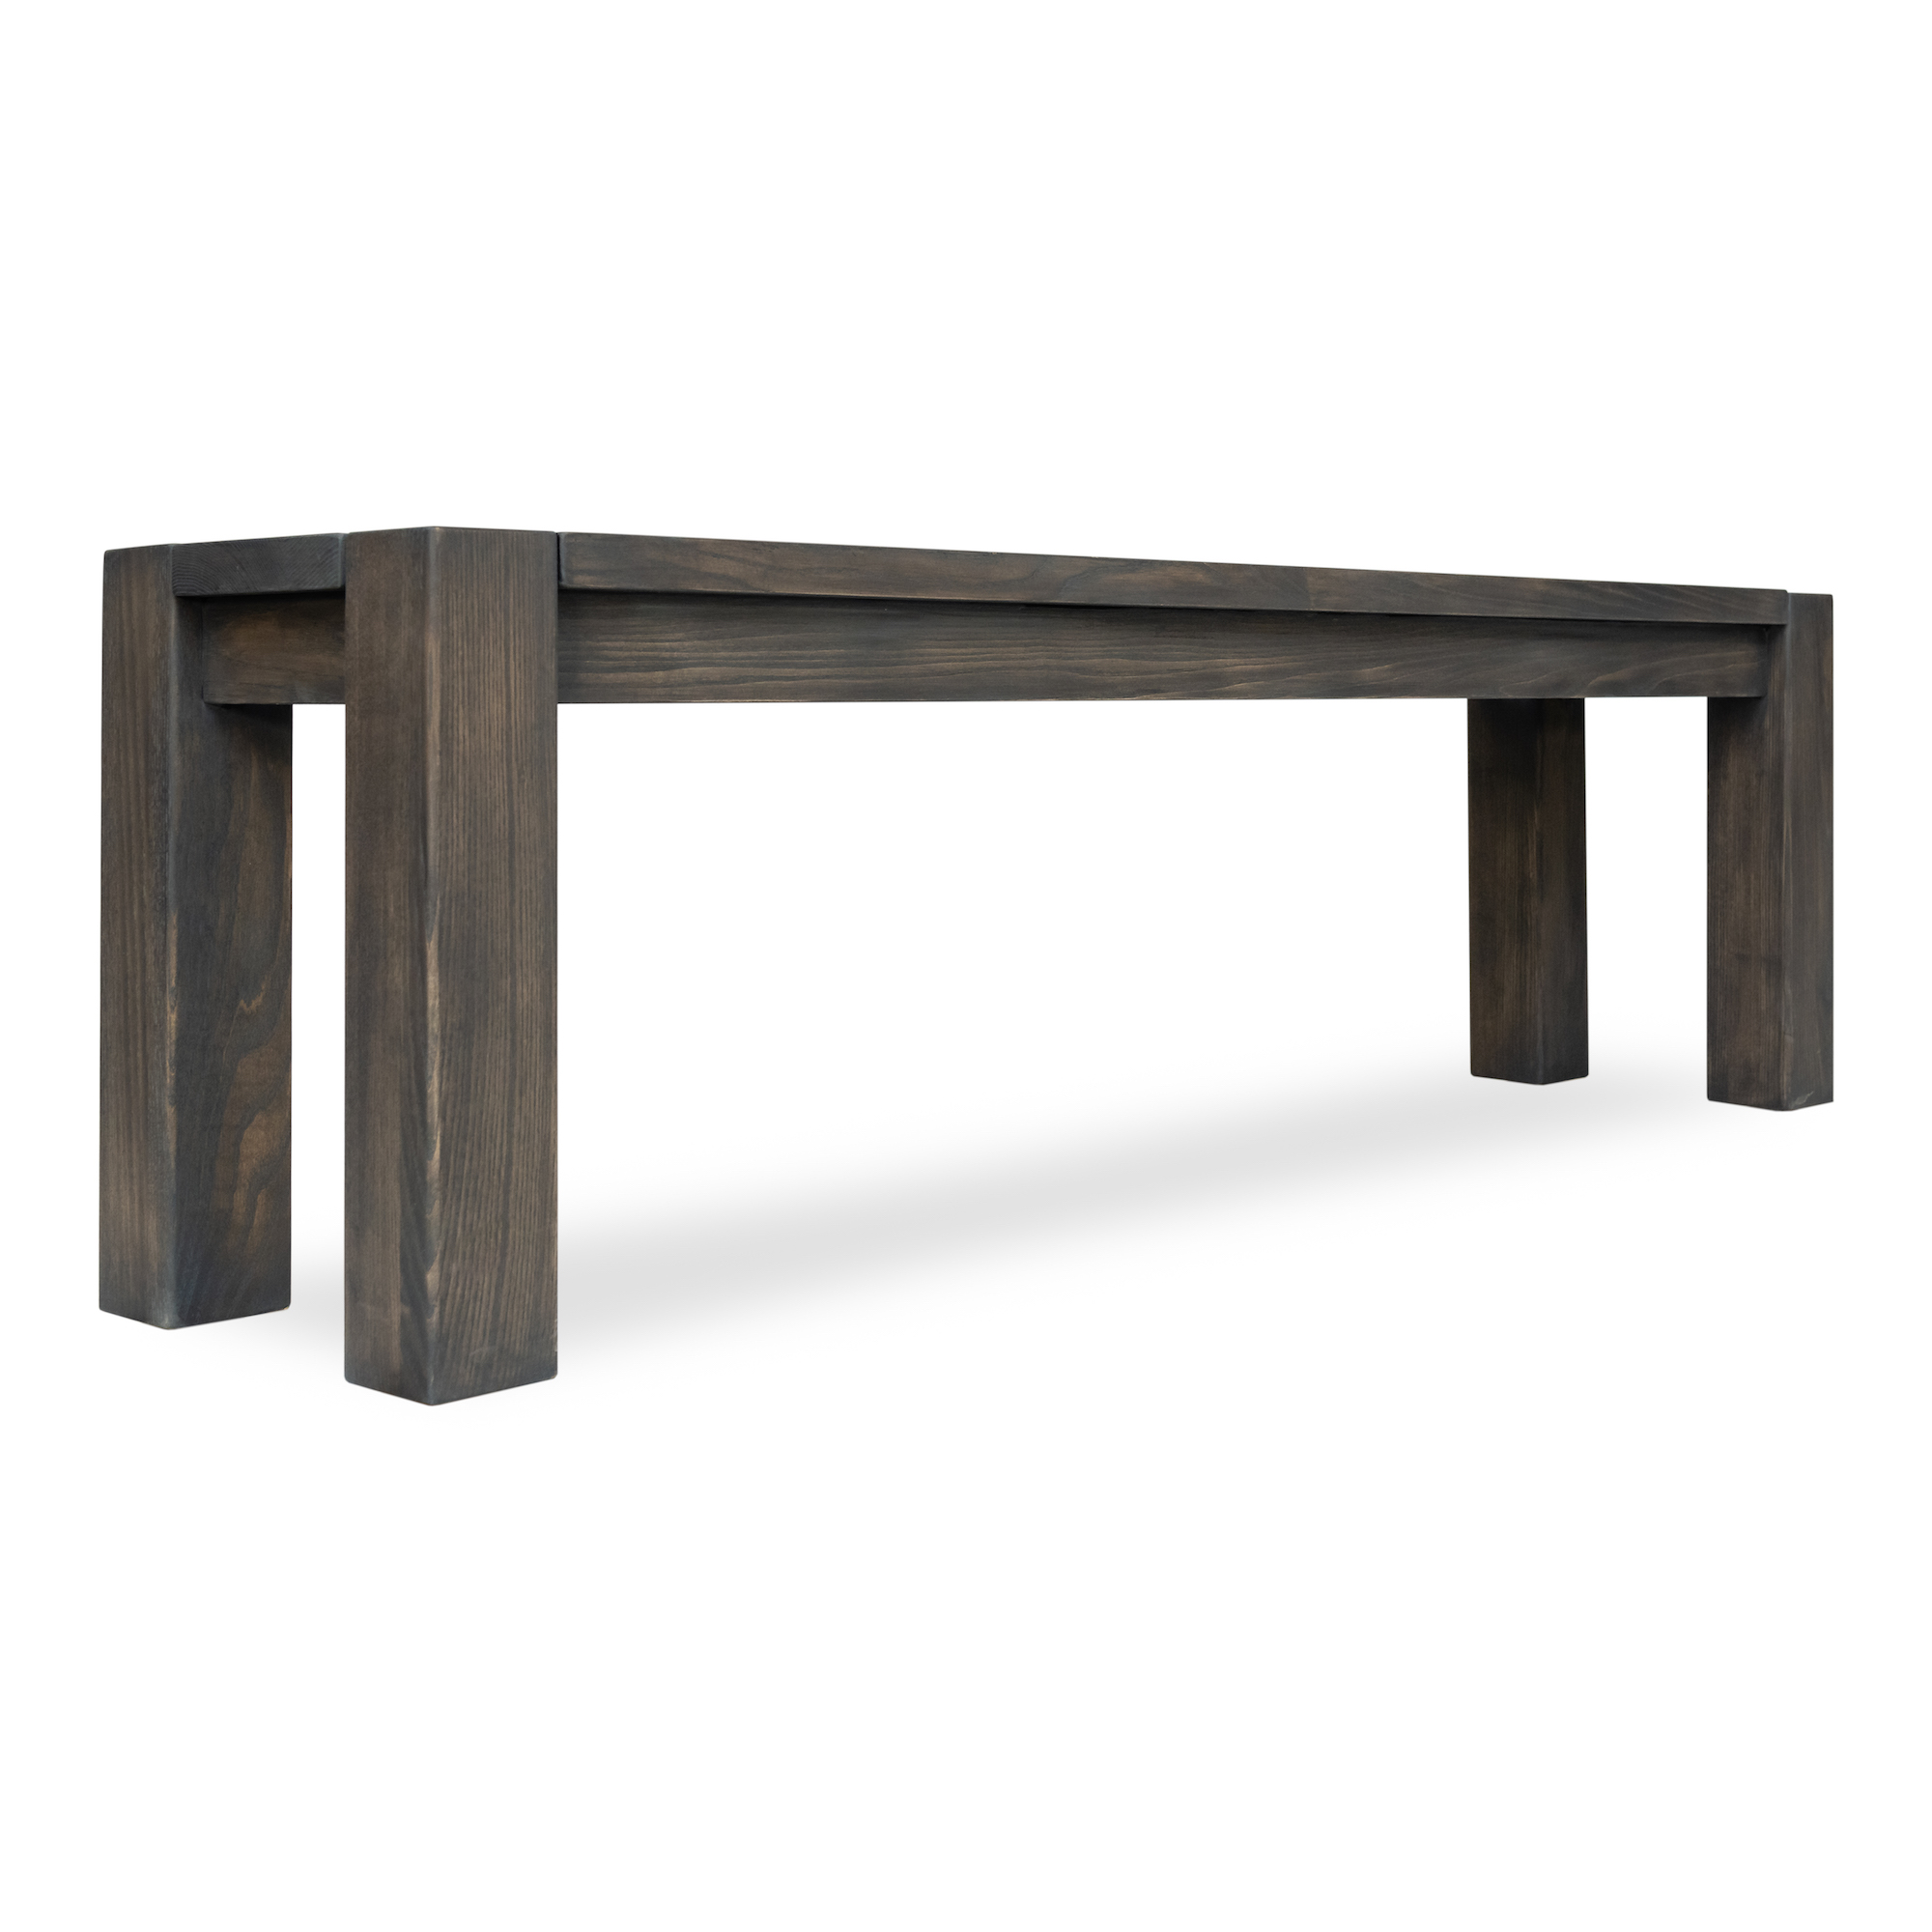 Woodcraft_Furniture_WestWindBench-4-3-1.jpg